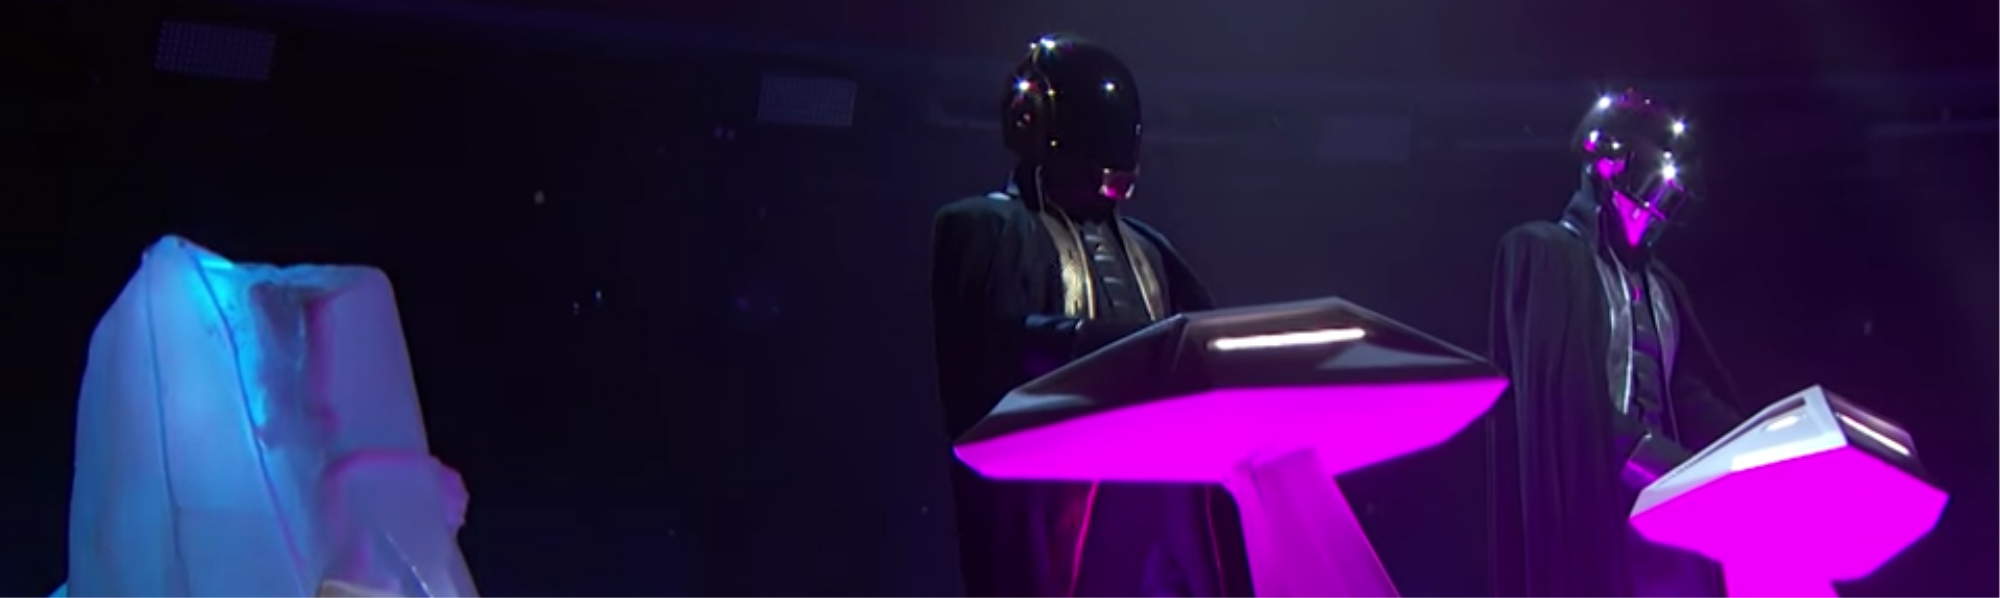 Some Diehard Fan Made a Supercut of Songs Sampled by Daft Punk